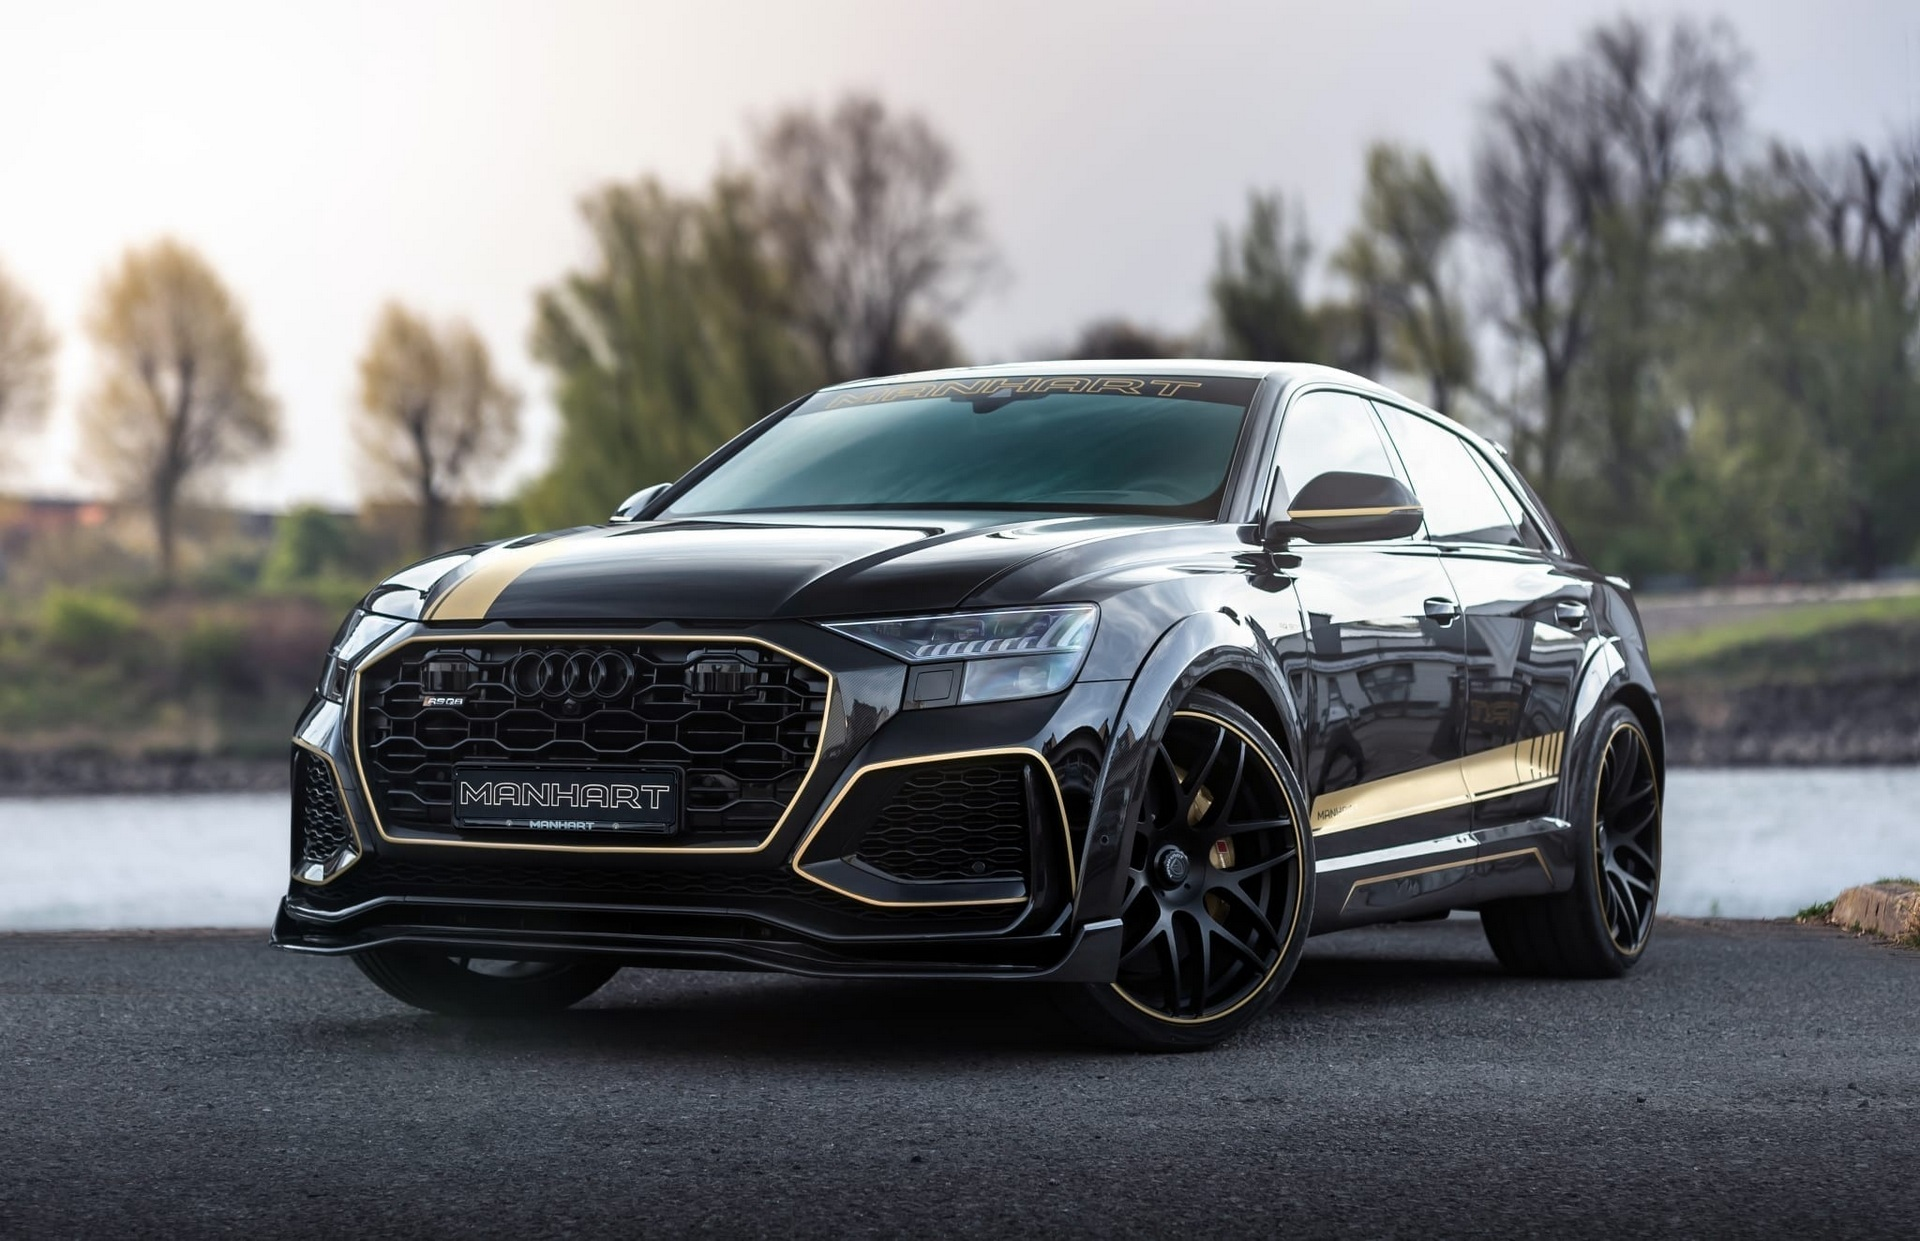 Manhart showed us its Audi RS Q8 styling ideas more than a year ago, but the first finished car has only now left the tuner's garage.